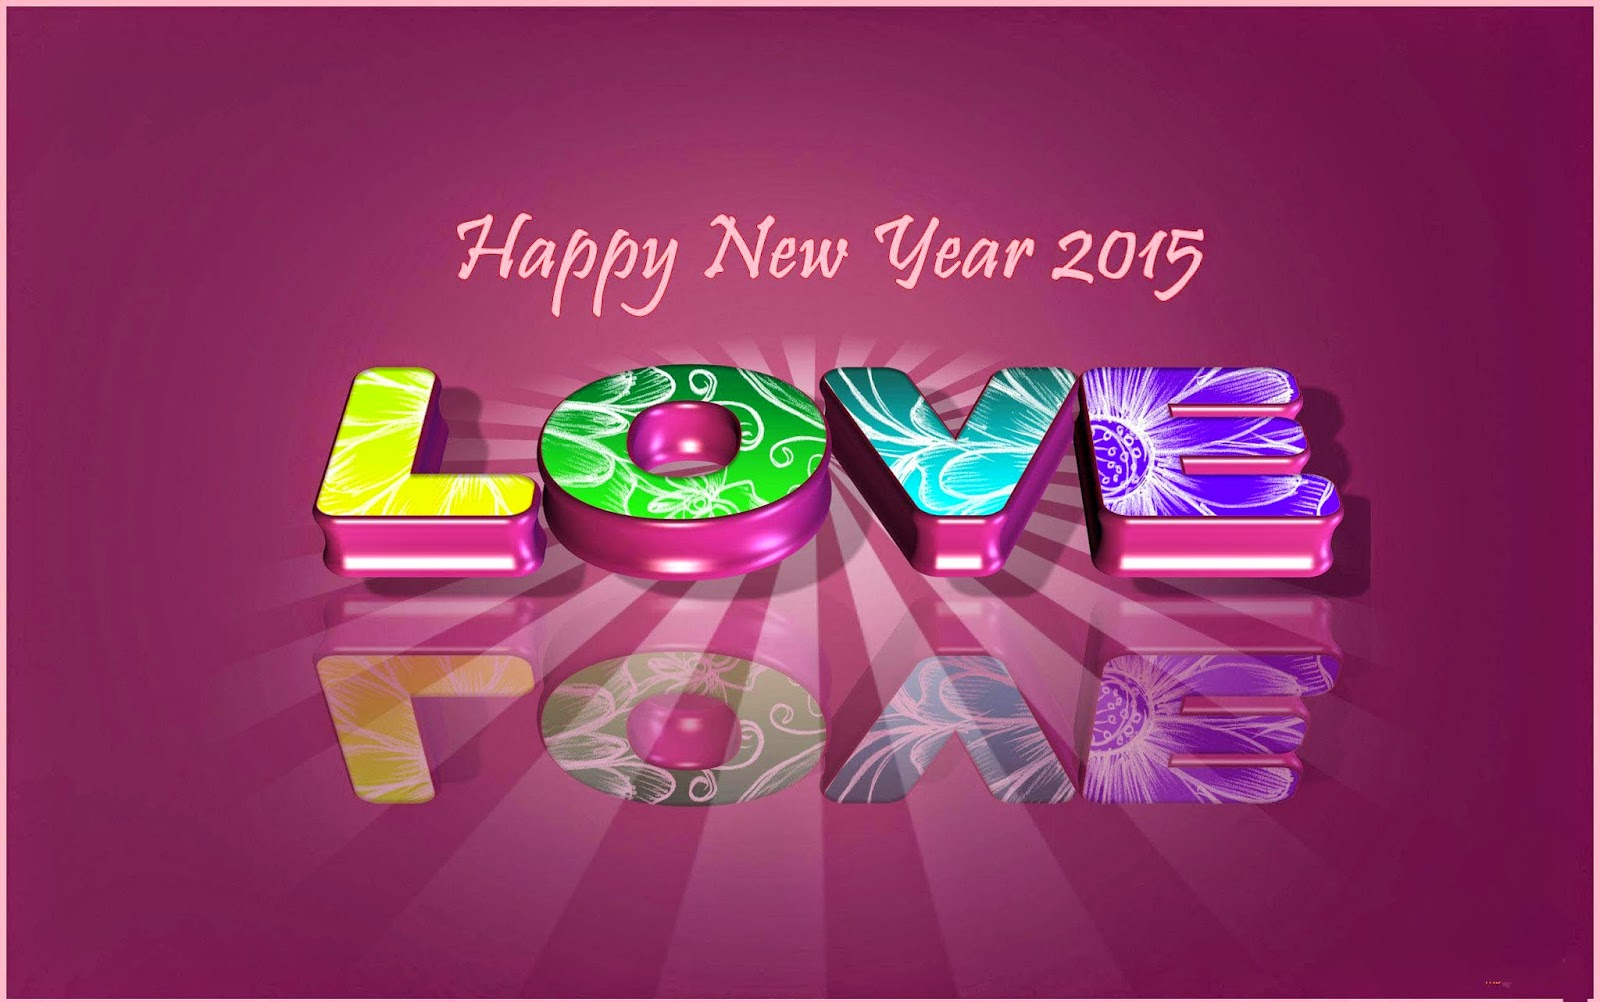 Happy New Year 2015 Love Cards Free Download